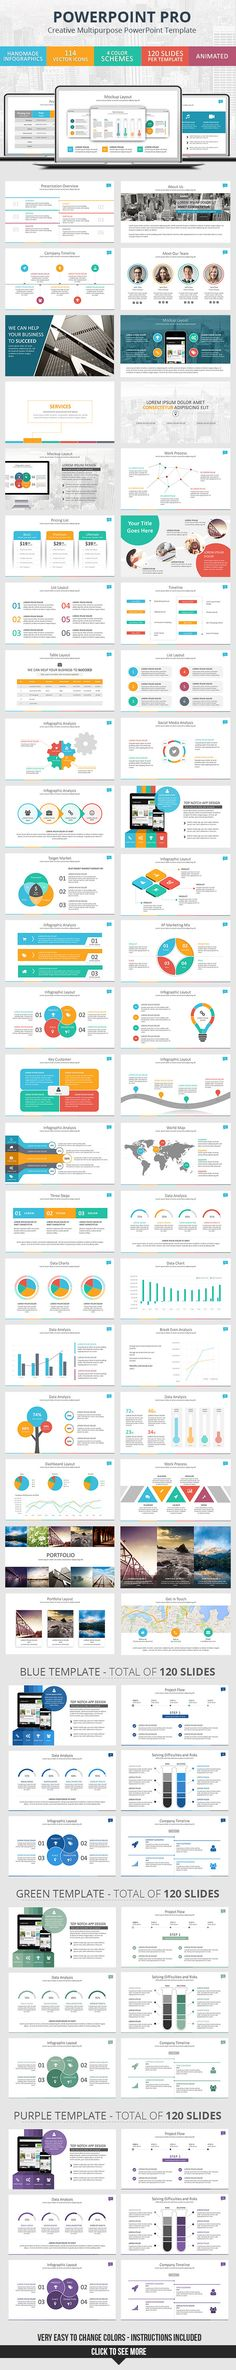 activa powerpoint presentation template | tables of data, Presentation templates